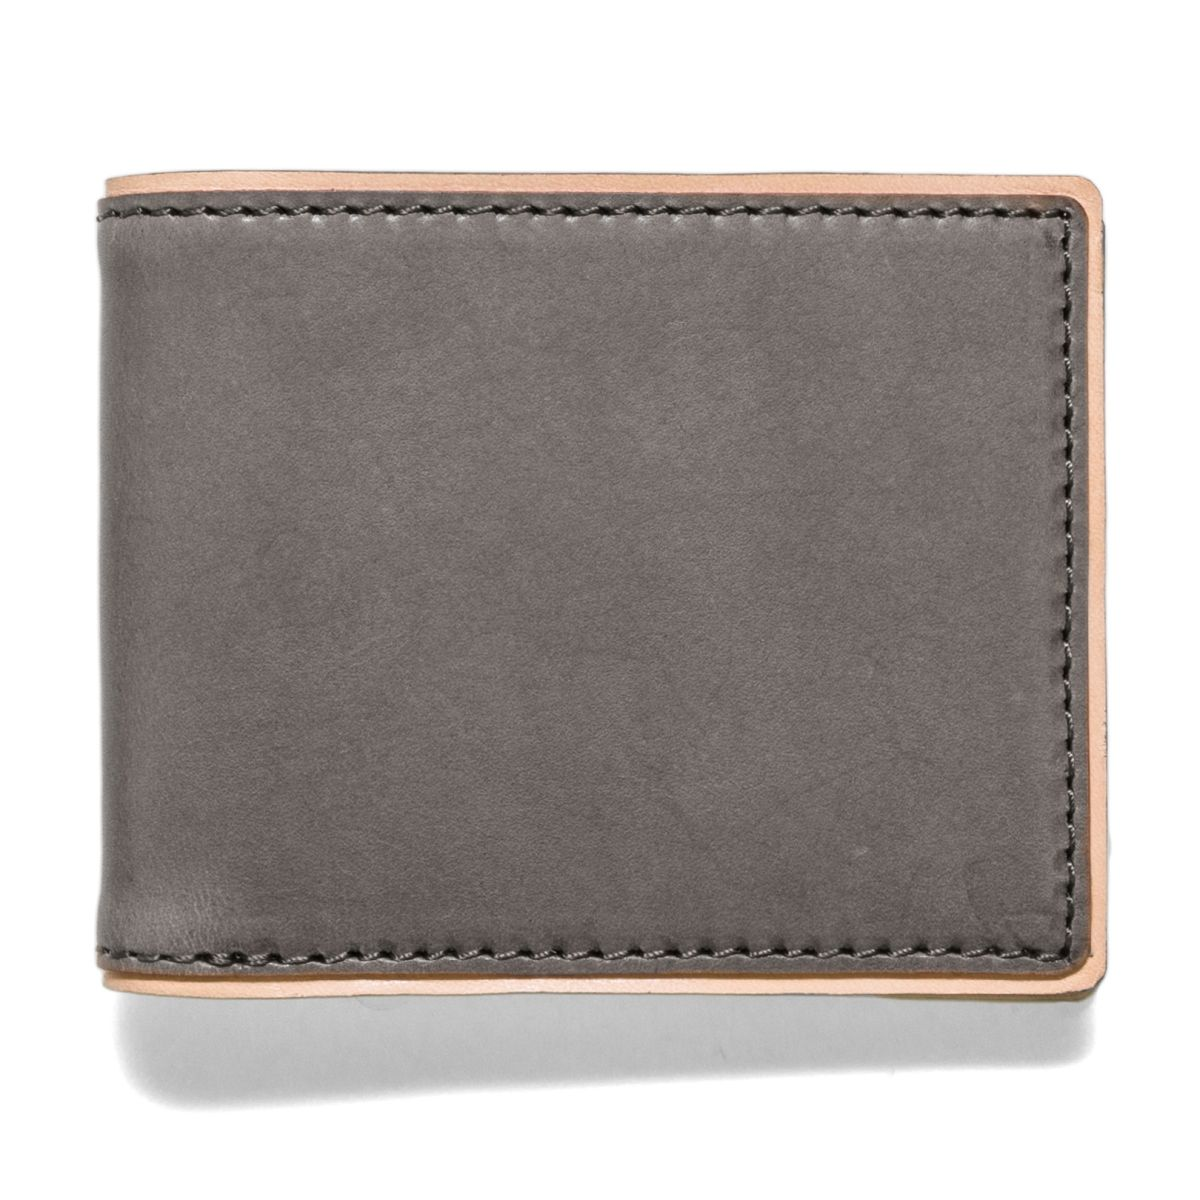 J.FOLD DUOTONE Leather Wallet - Grey